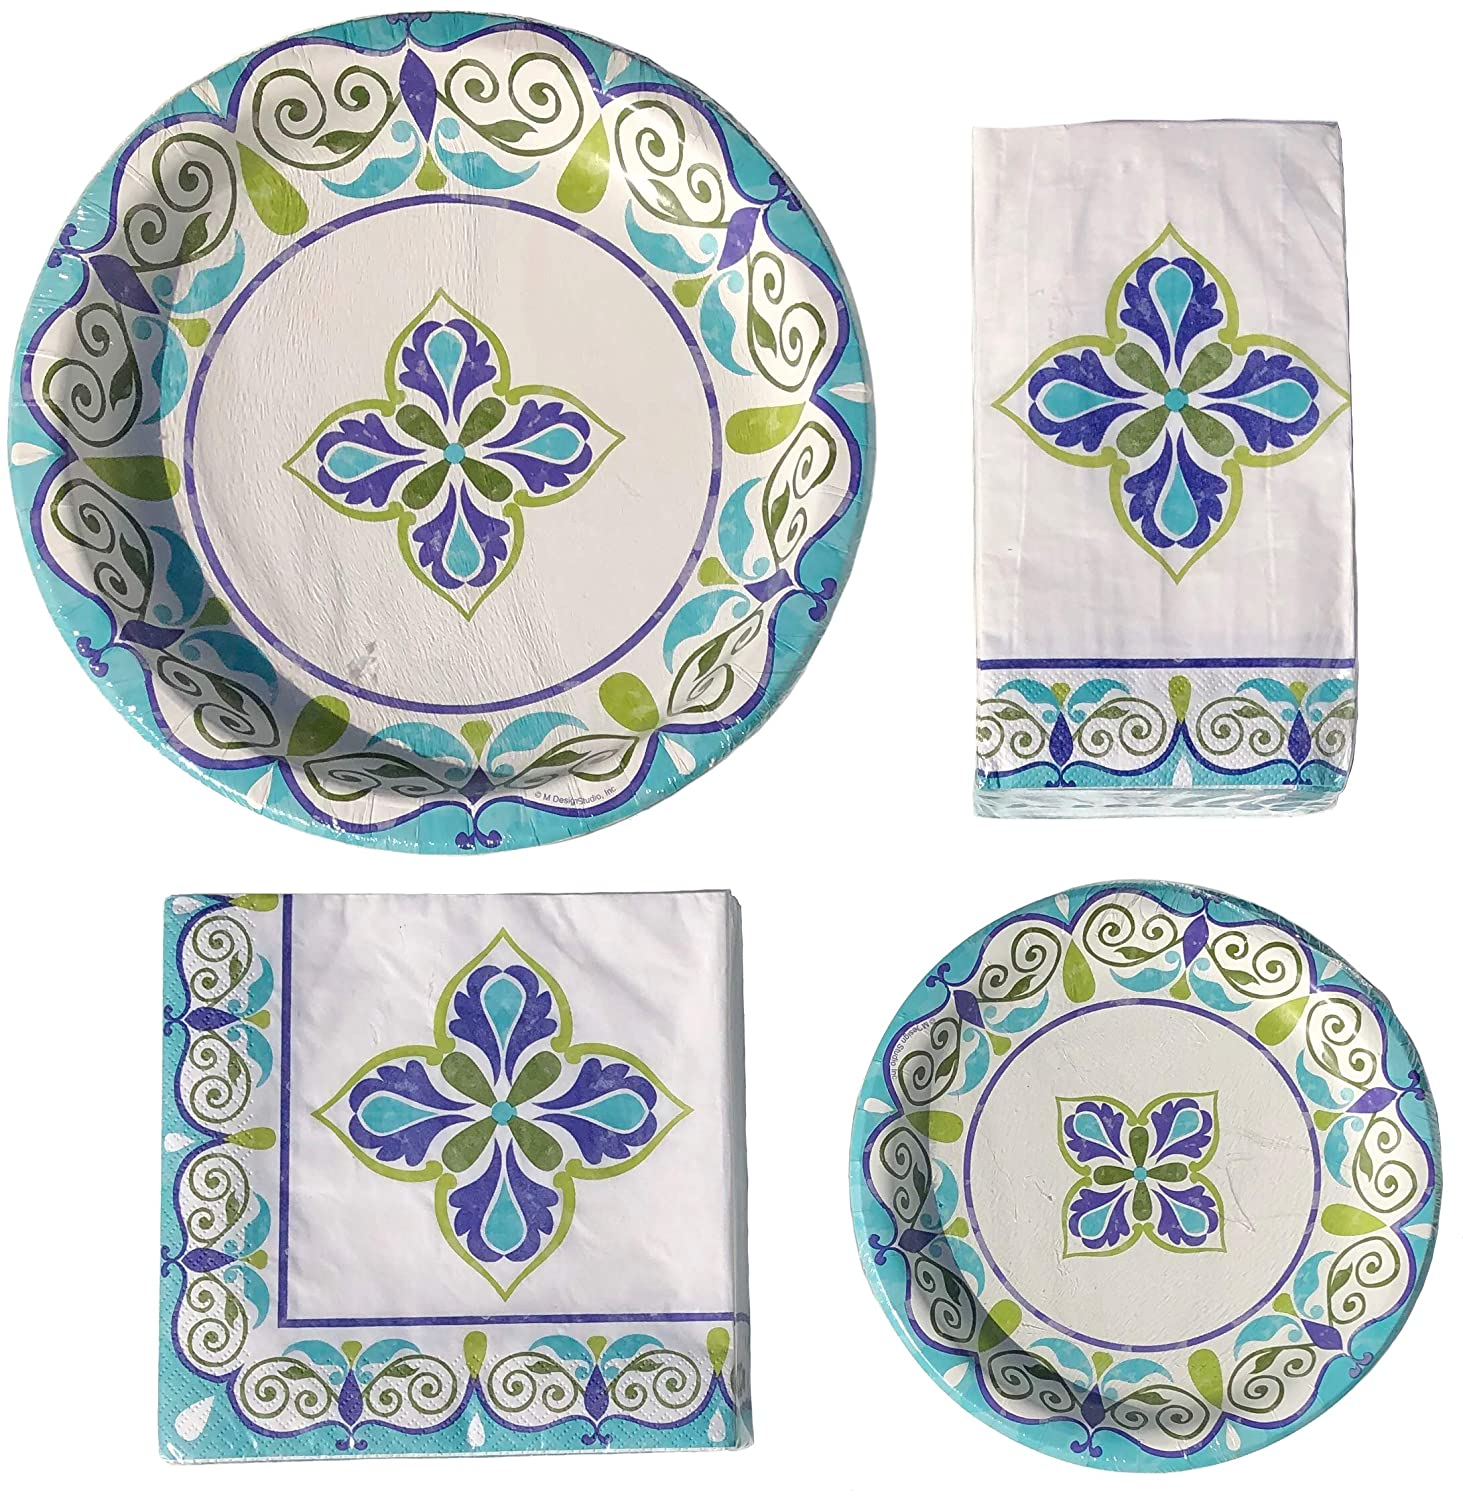 8096 36 each of Luncheon Napkins /& Guest Towels Creative Converting Floral Swirls Paper Party Bundle: 18 Dessert//Salad Plates 18 Lg Dinner Plates